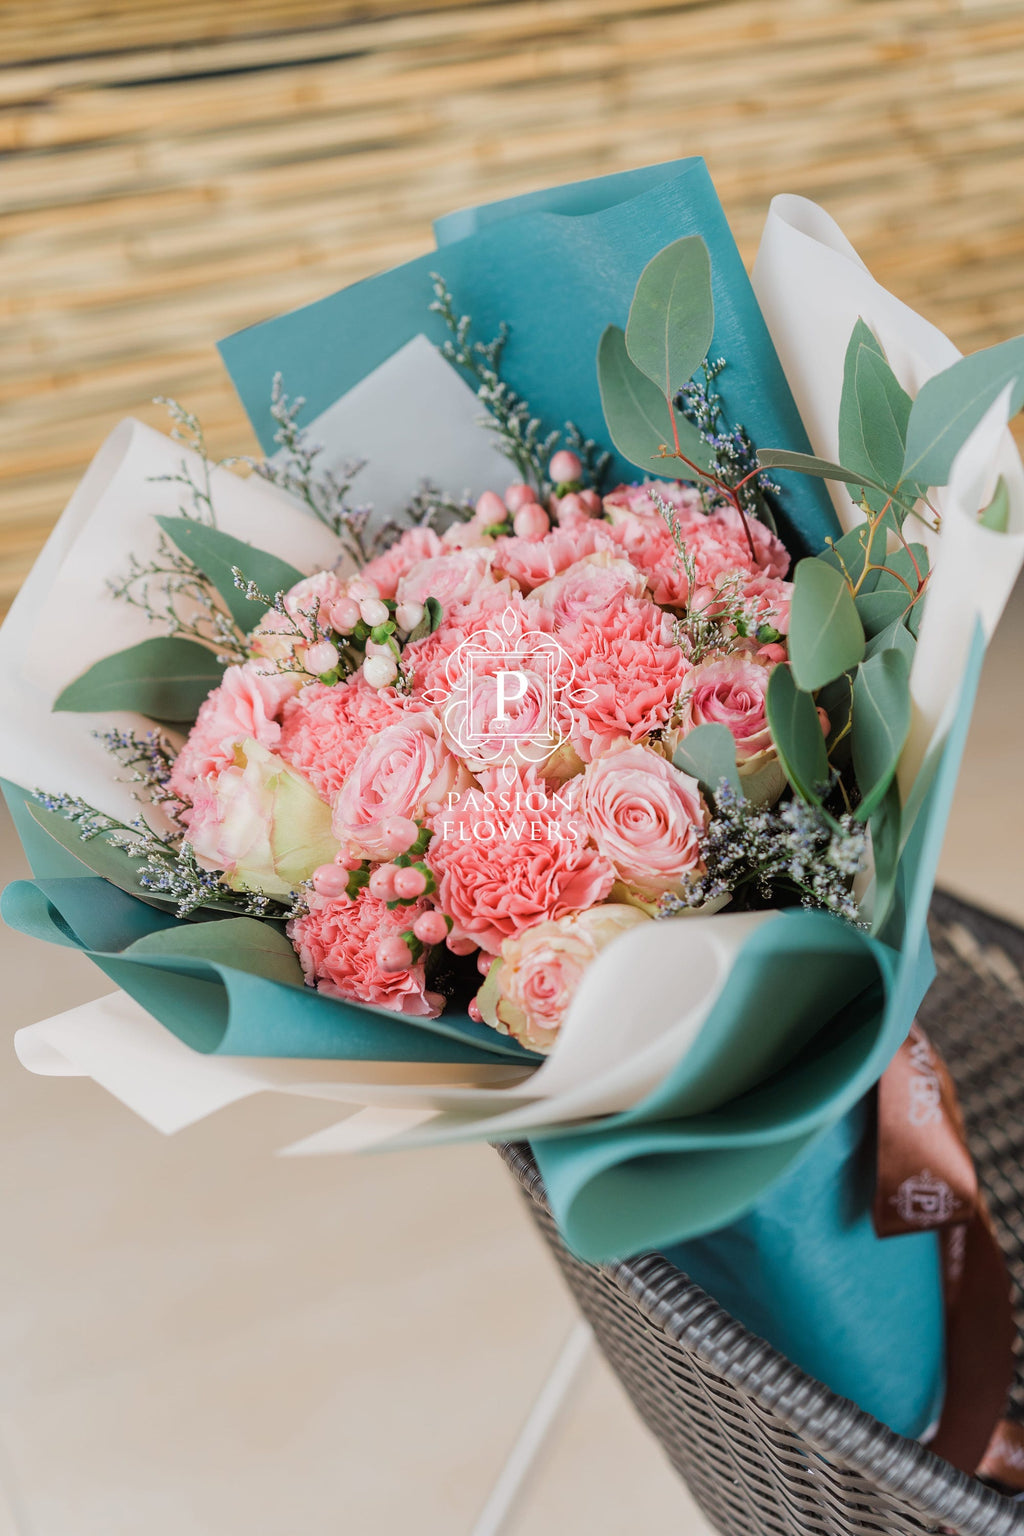 Seline -  1 Dozen Pink Ecuadorian Roses with Carnations Bouquet